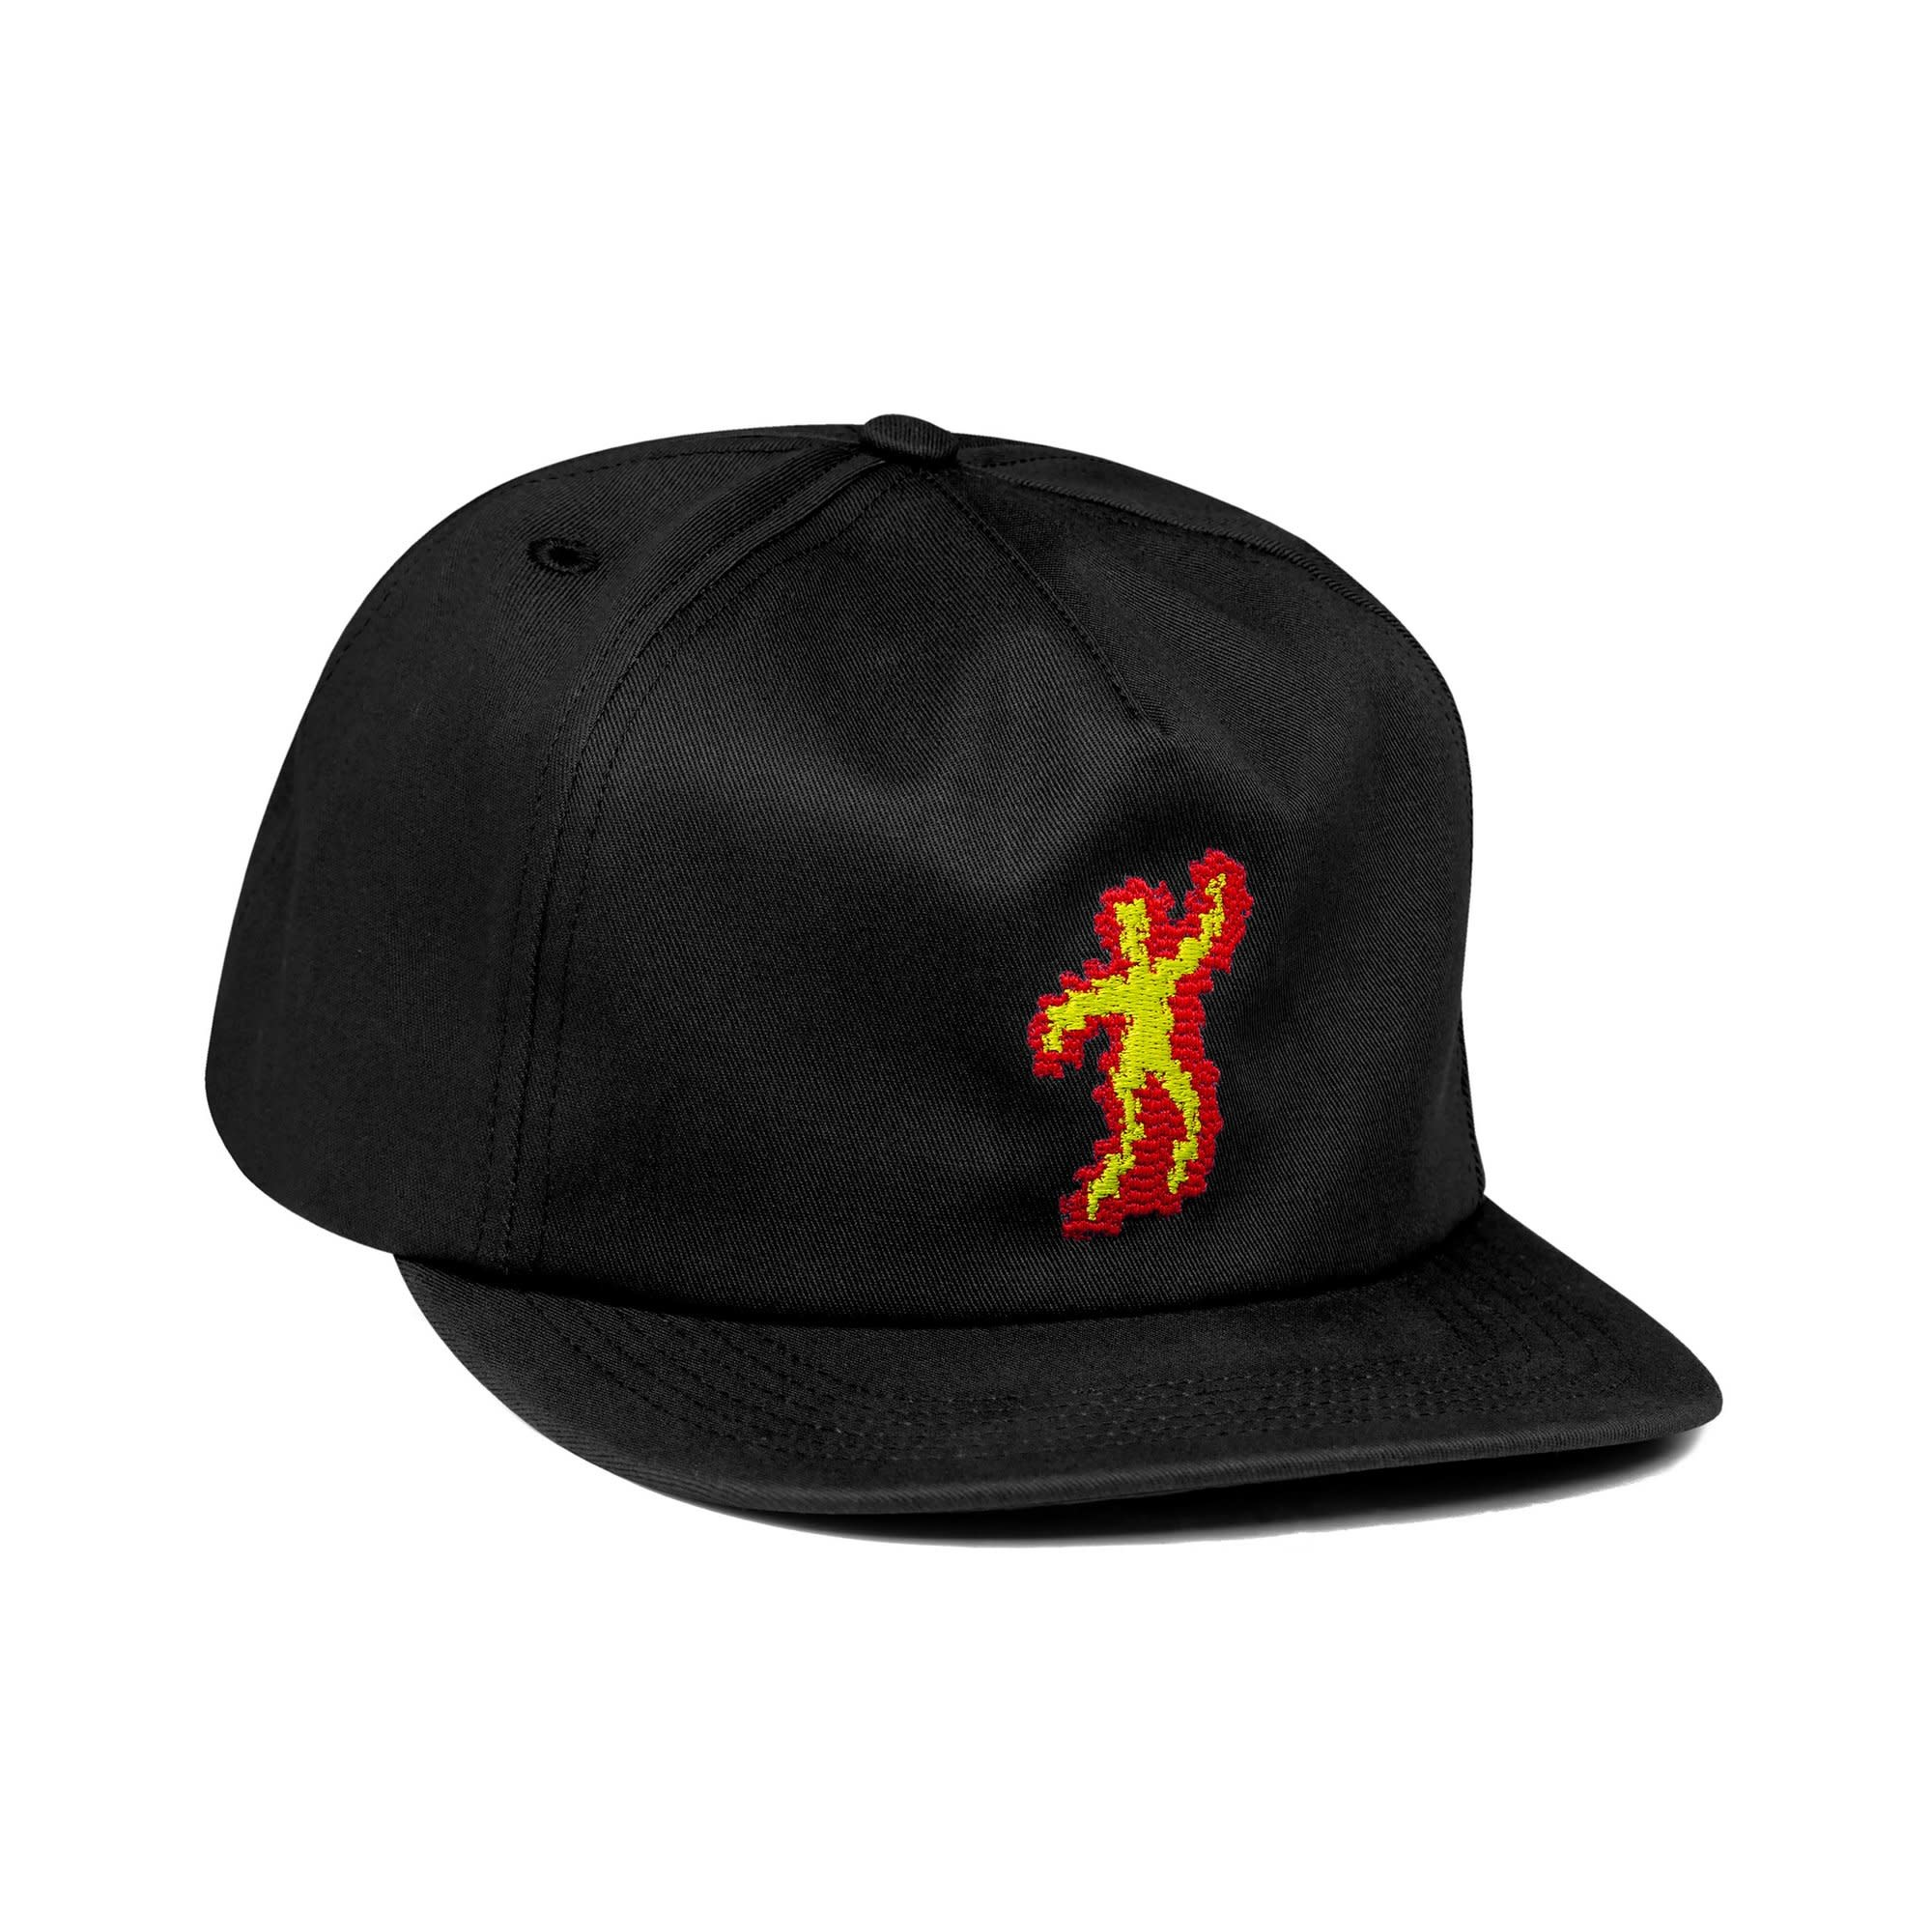 Call Me 917 Scorched Hat Black